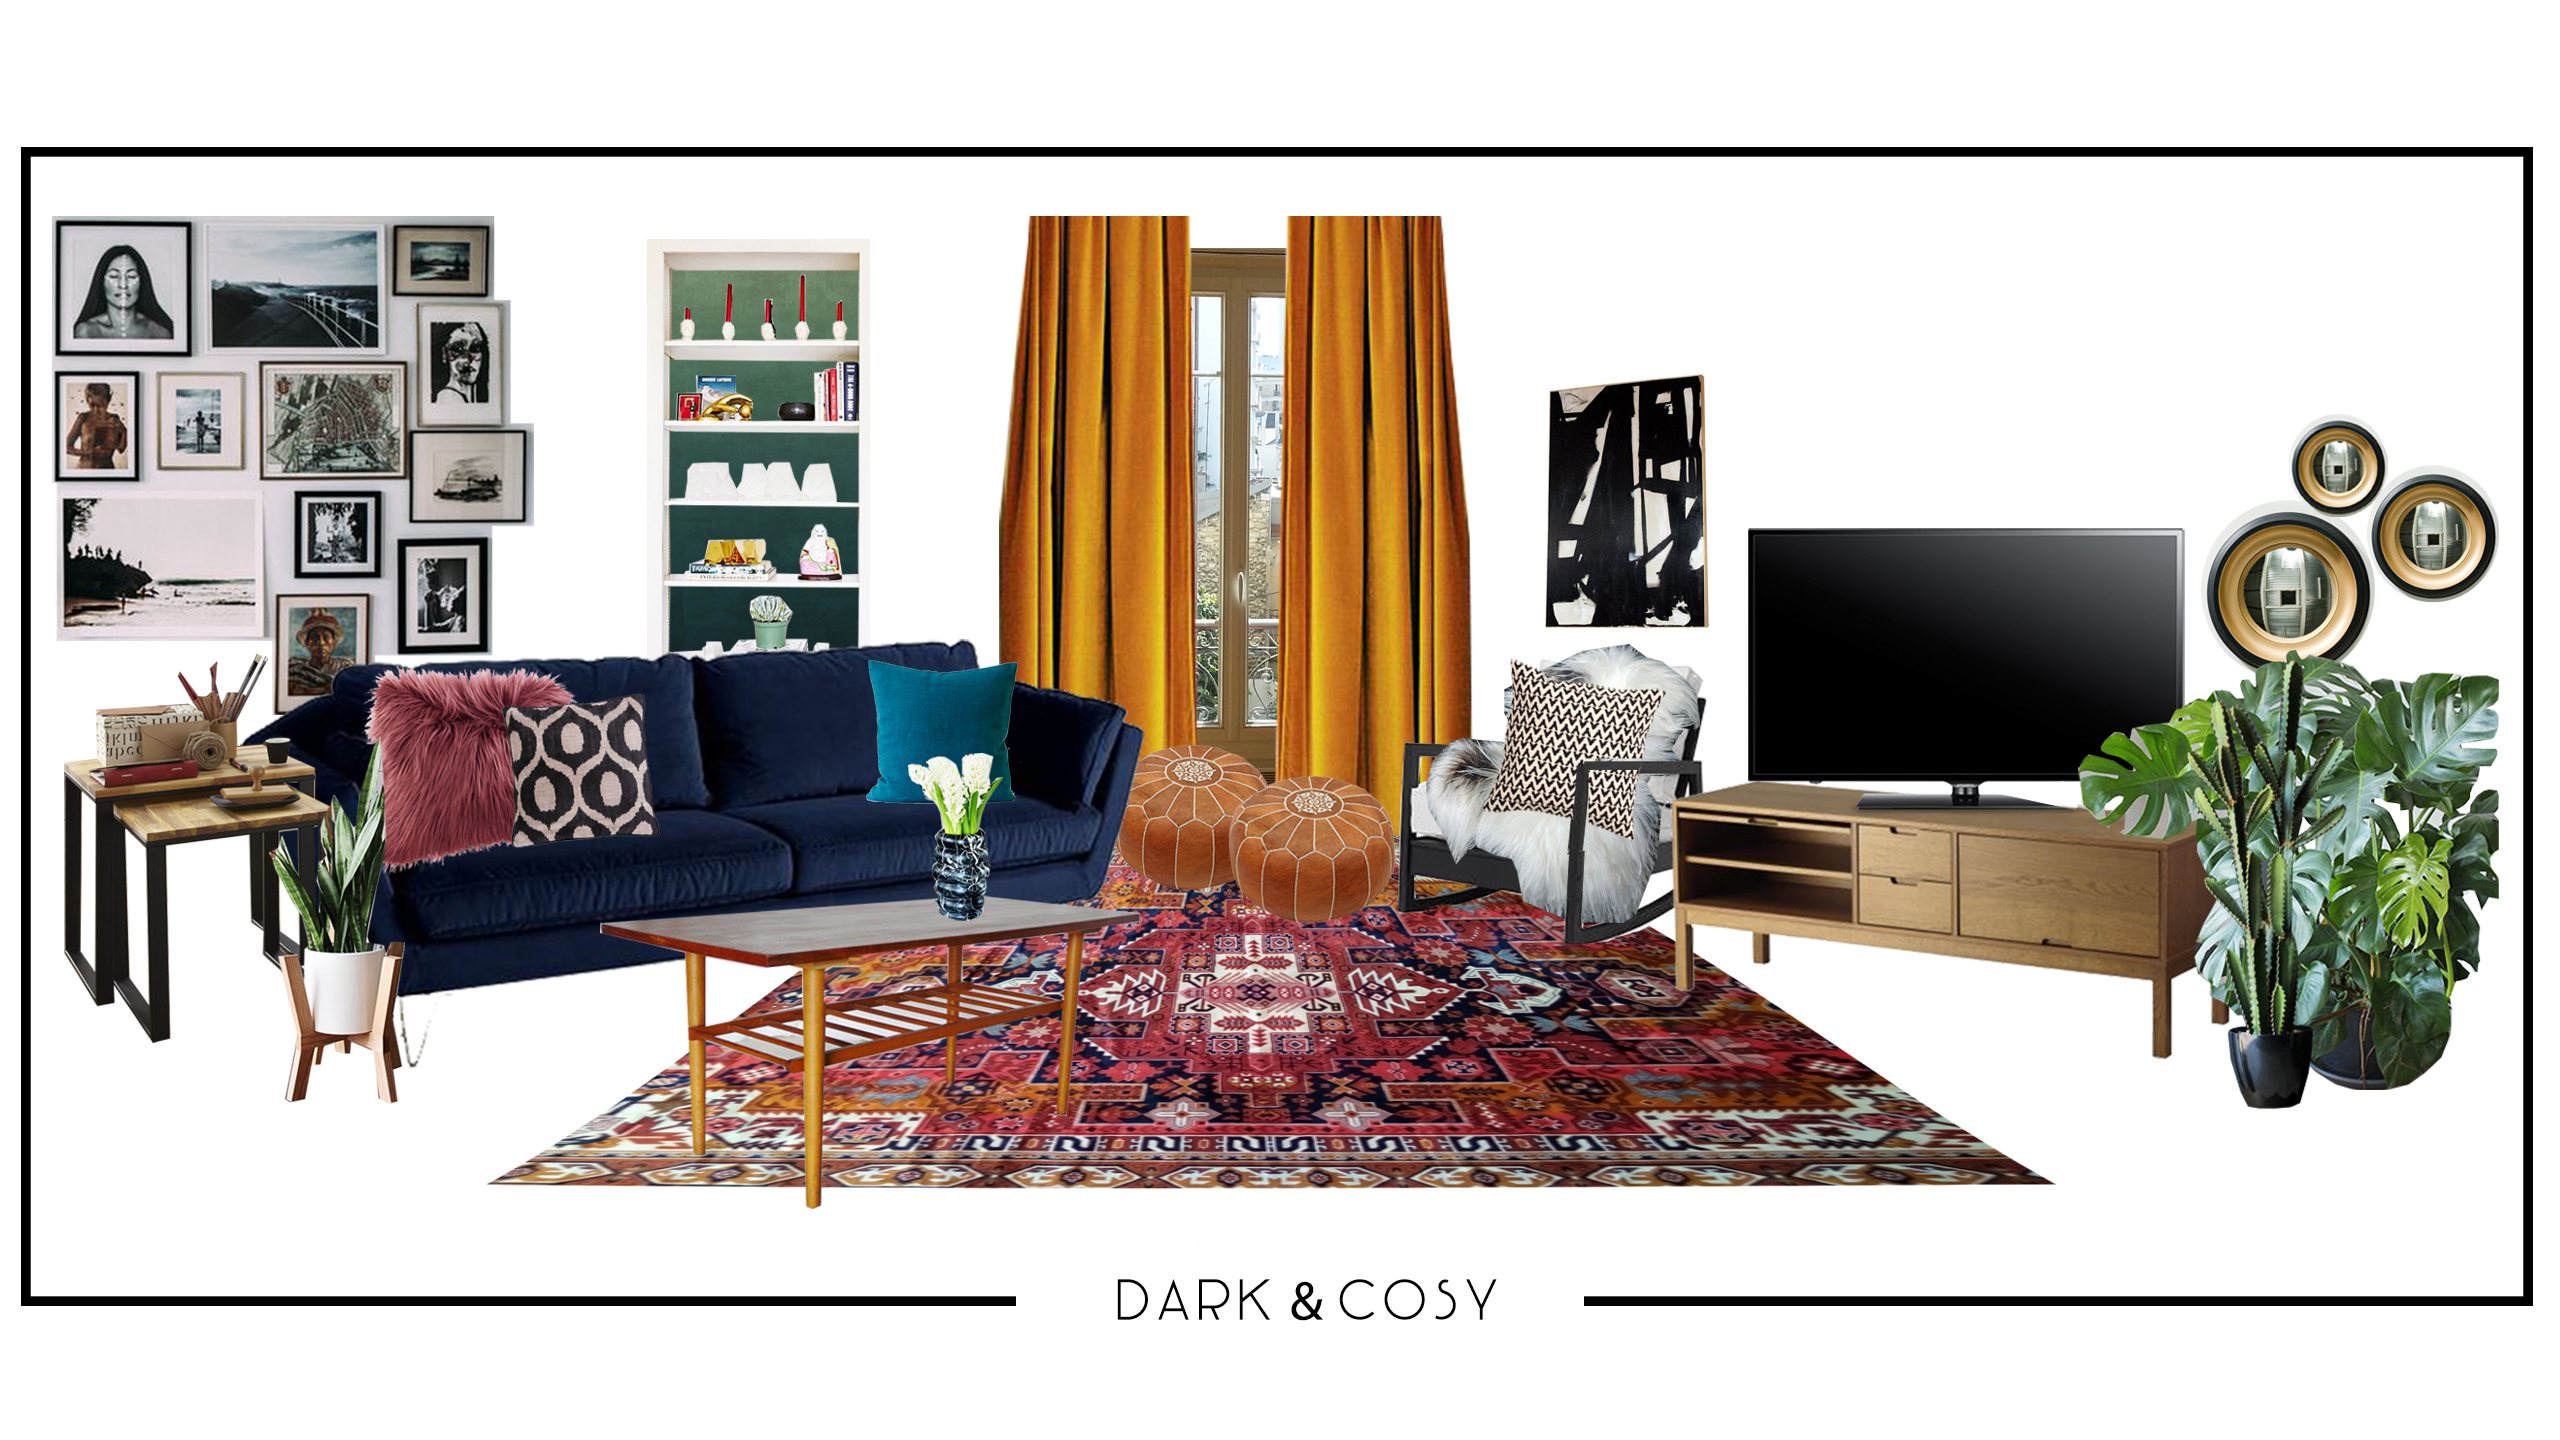 In This Dark U0026 Cosy Version, The Room Is Geared Toward An Abundance Of  Textures, Especially Velvet And Faux Fur, To Create A Warm And Inviting  Space.